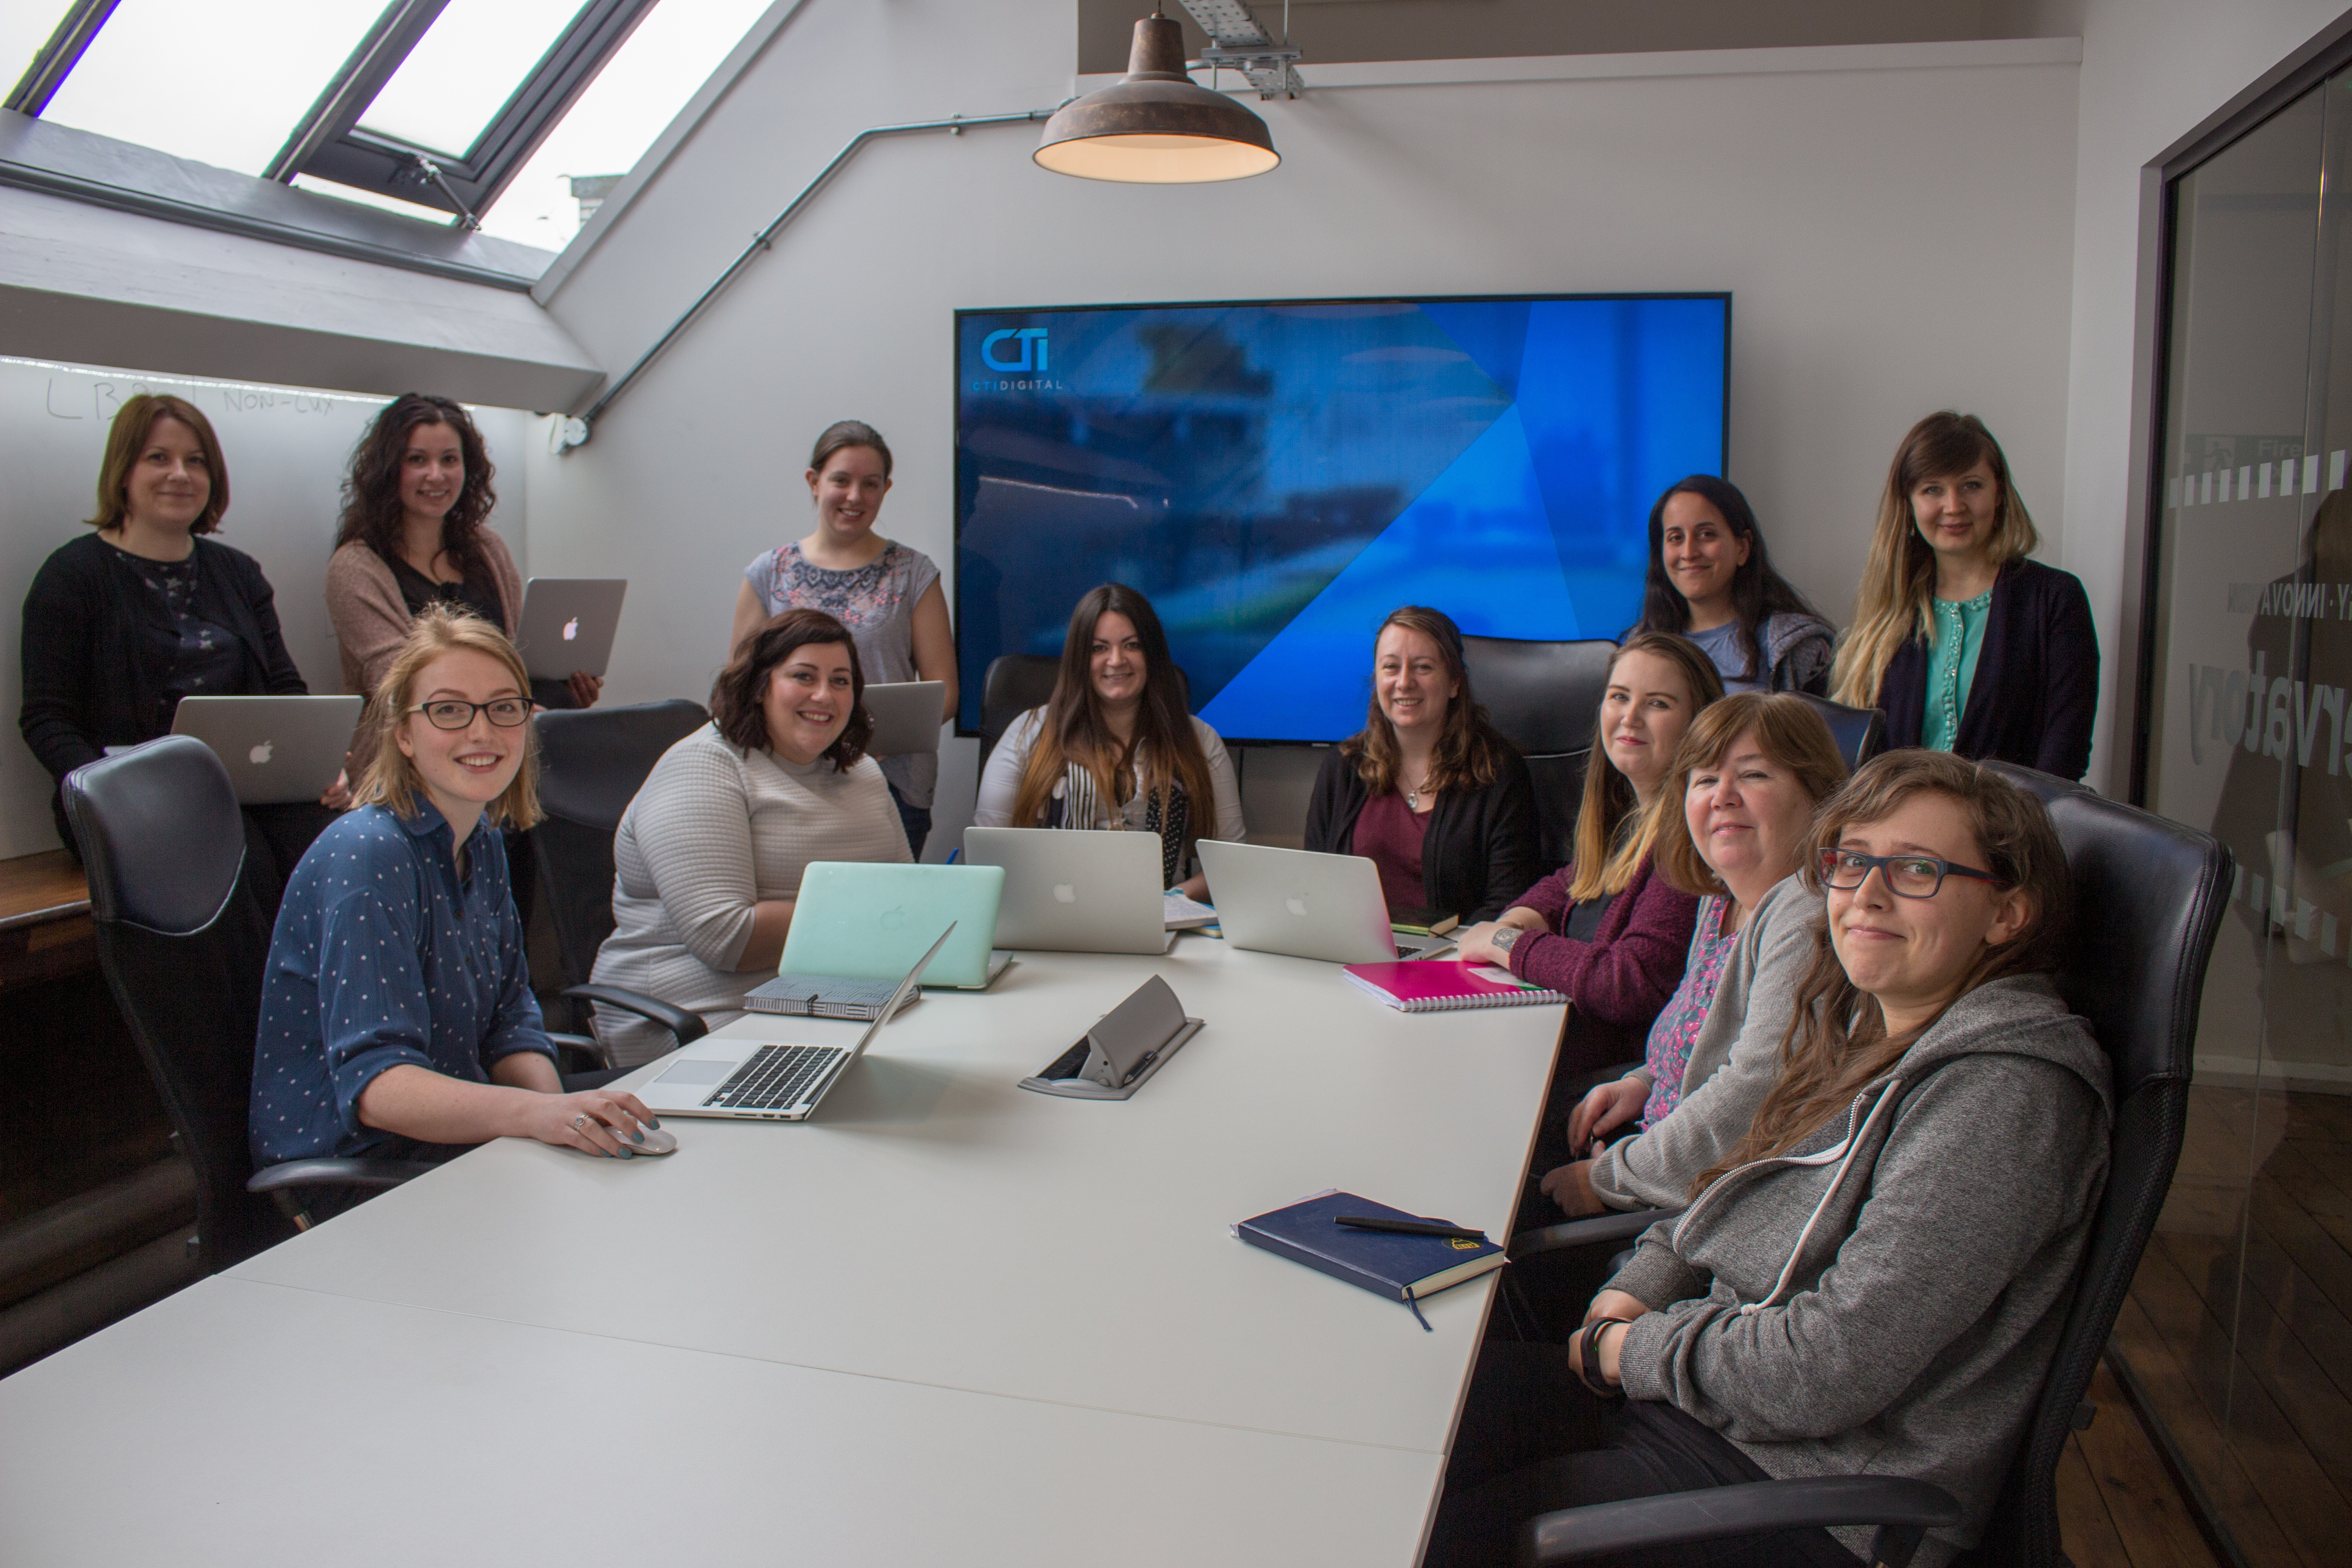 Women in Tech: Who has inspired your career?